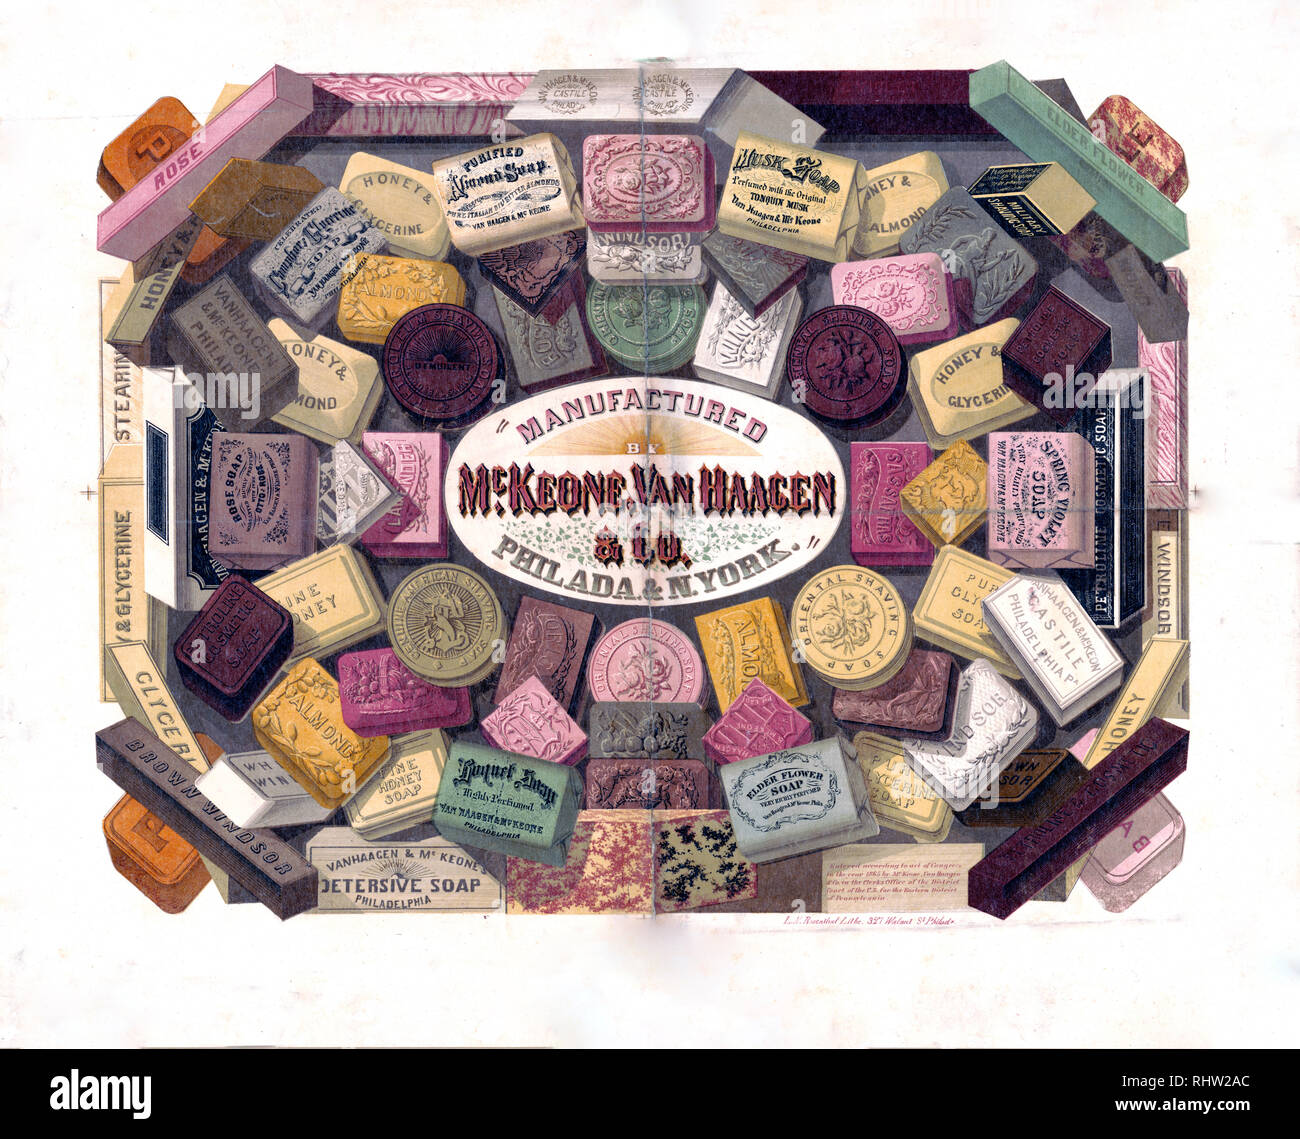 Print shows a variety of bath soaps. - Stock Image